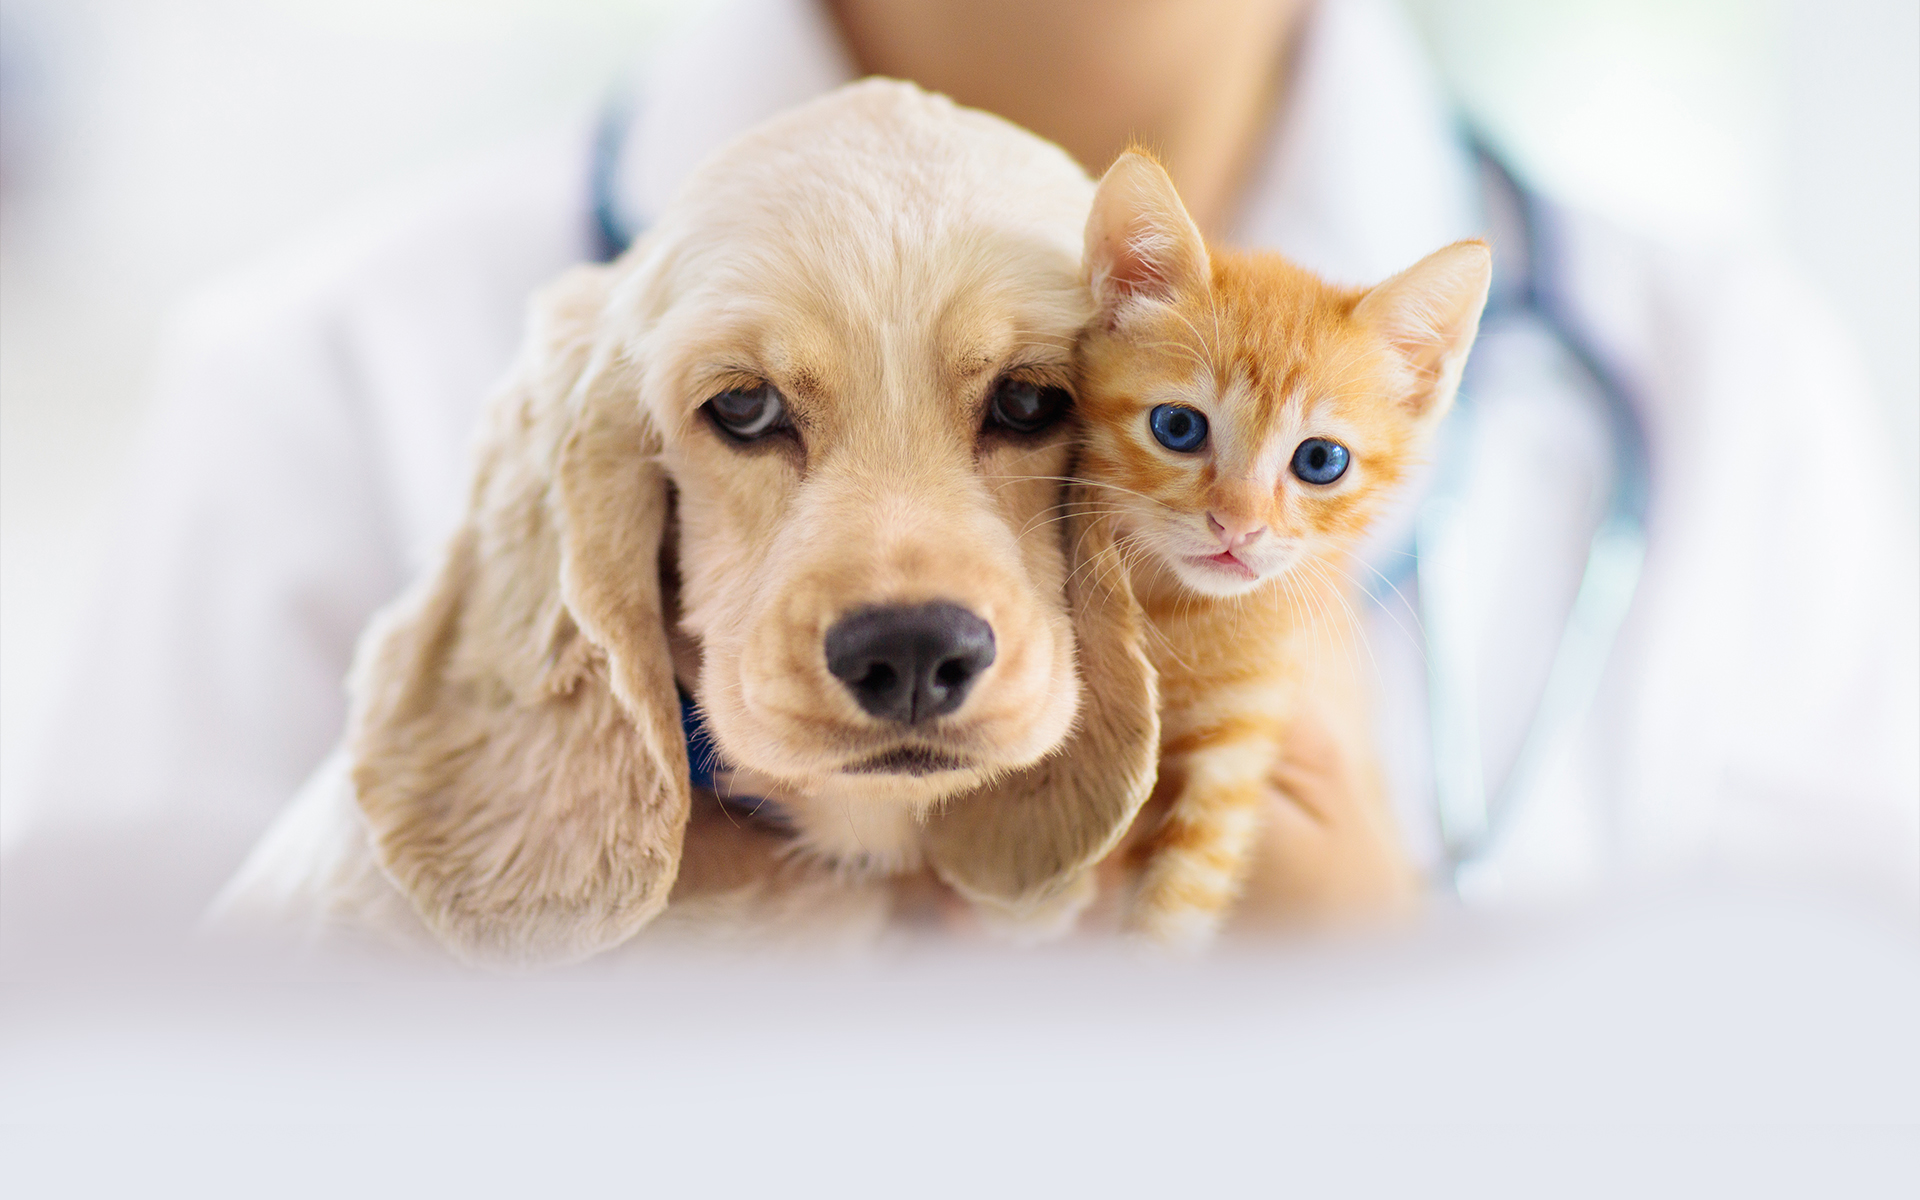 https://www.mypetshealth.ca/sites/camhp3/files/revslider/image/vet%202.1.jpg